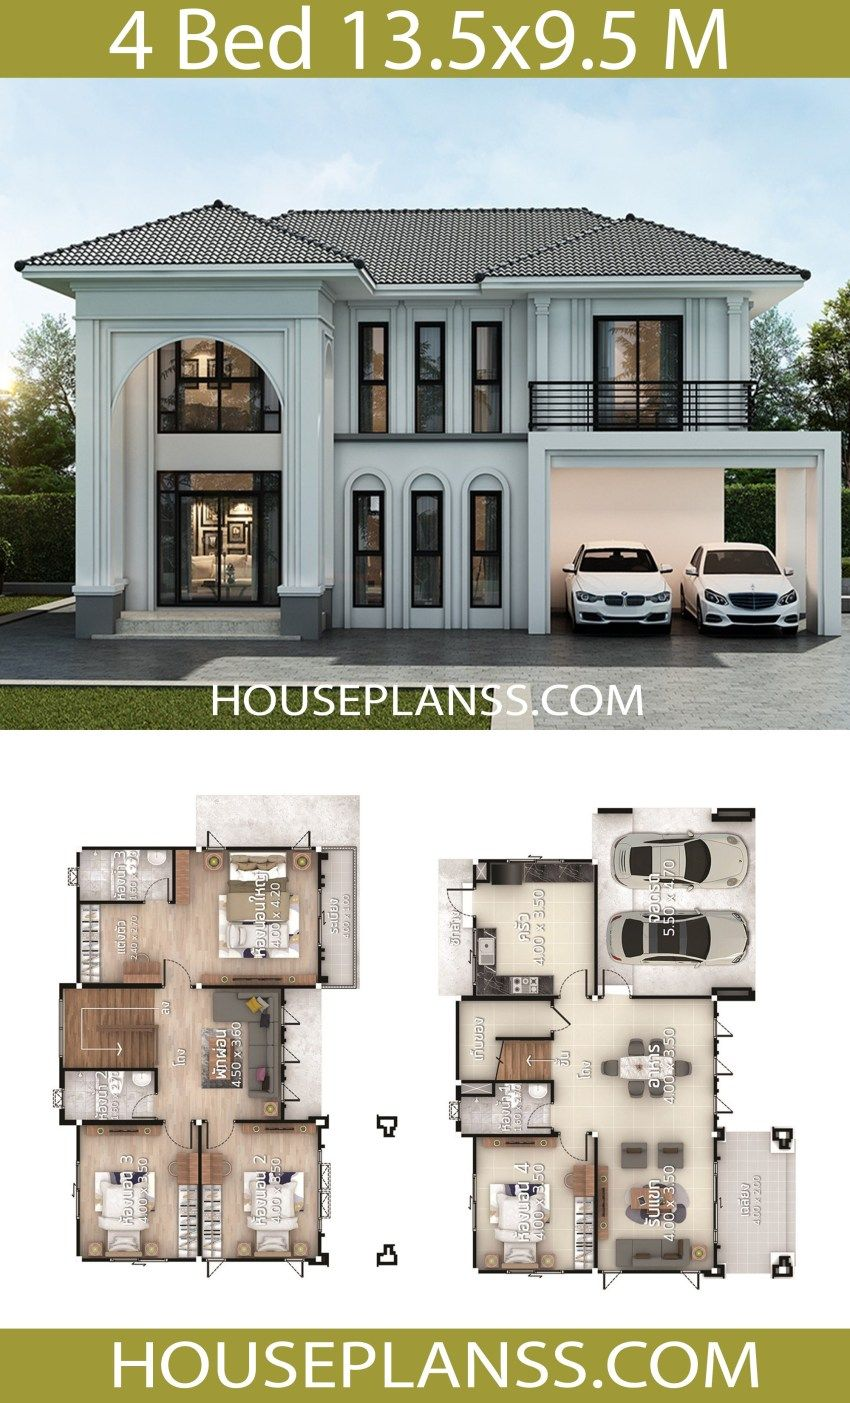 House Plans Design Idea 13 5x9 5 With 4 Bedrooms House Plans 3d Beautiful House Plans Sims House Plans House Layouts